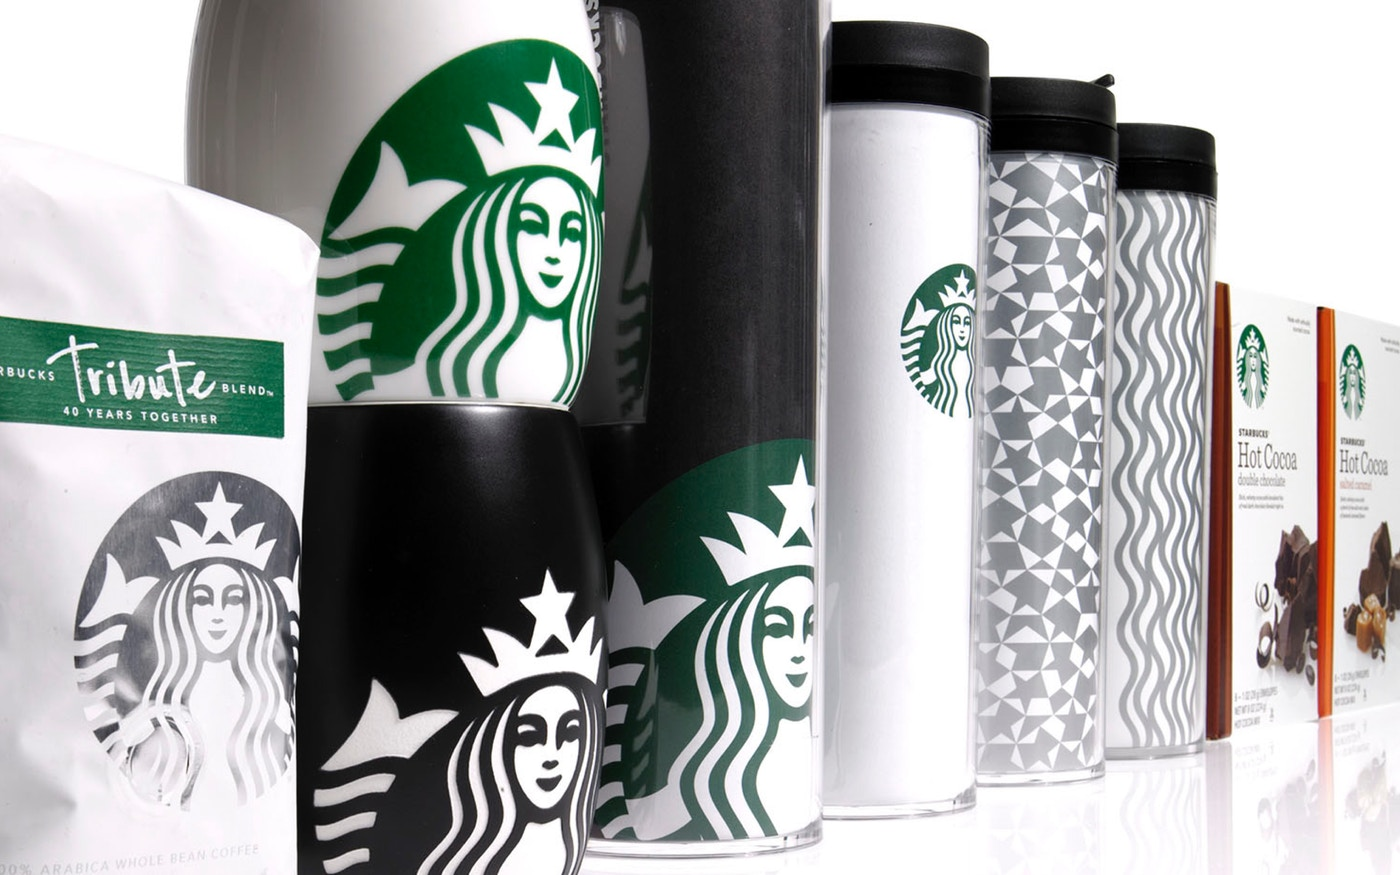 Starbucks visual identity on mugs